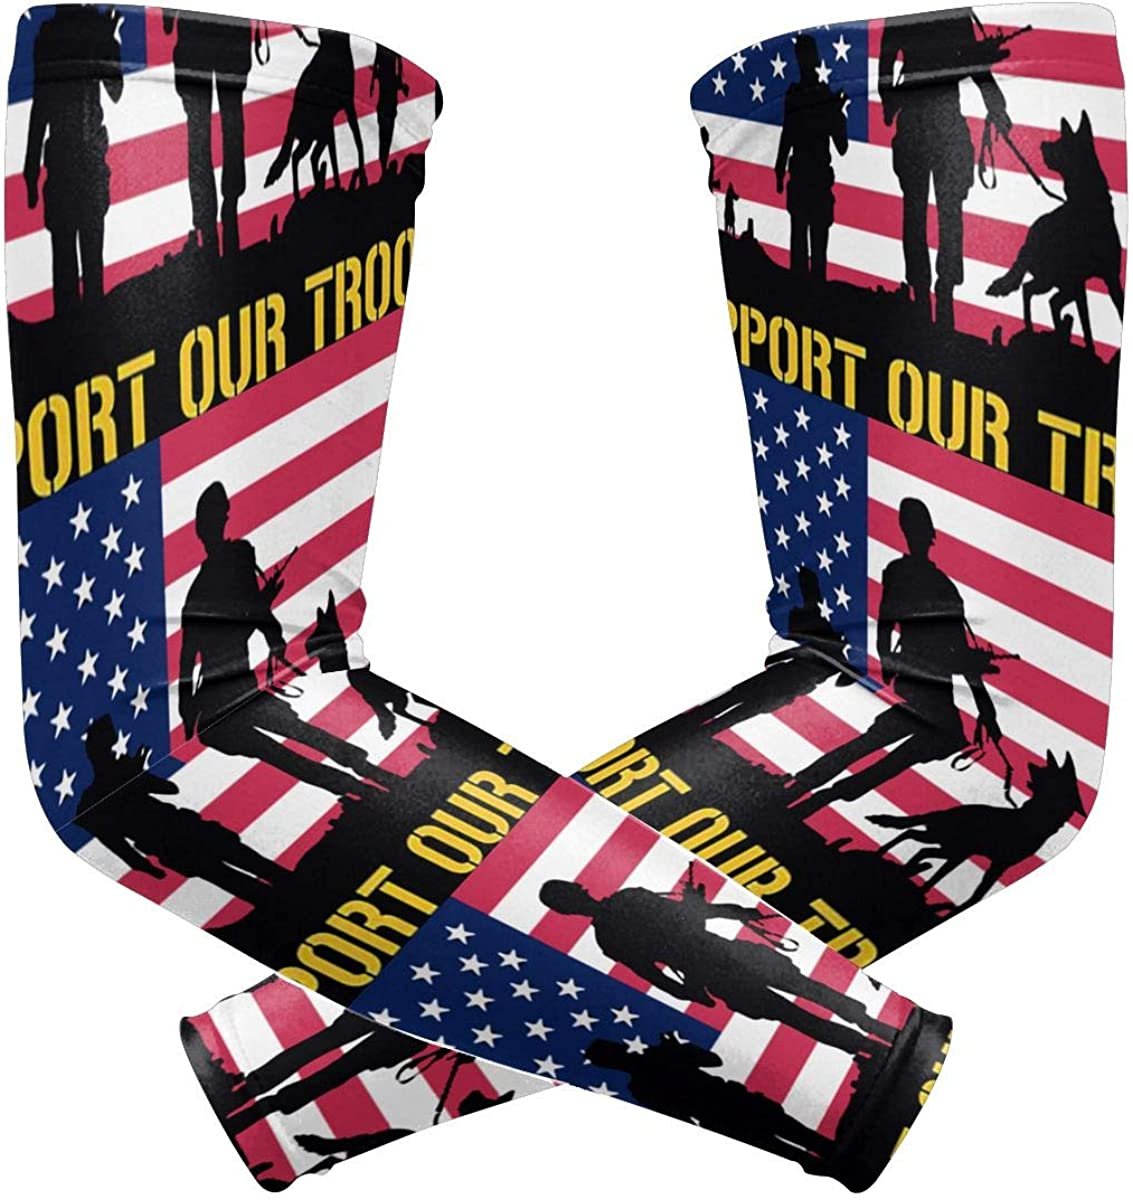 Support Our Troops Flag...